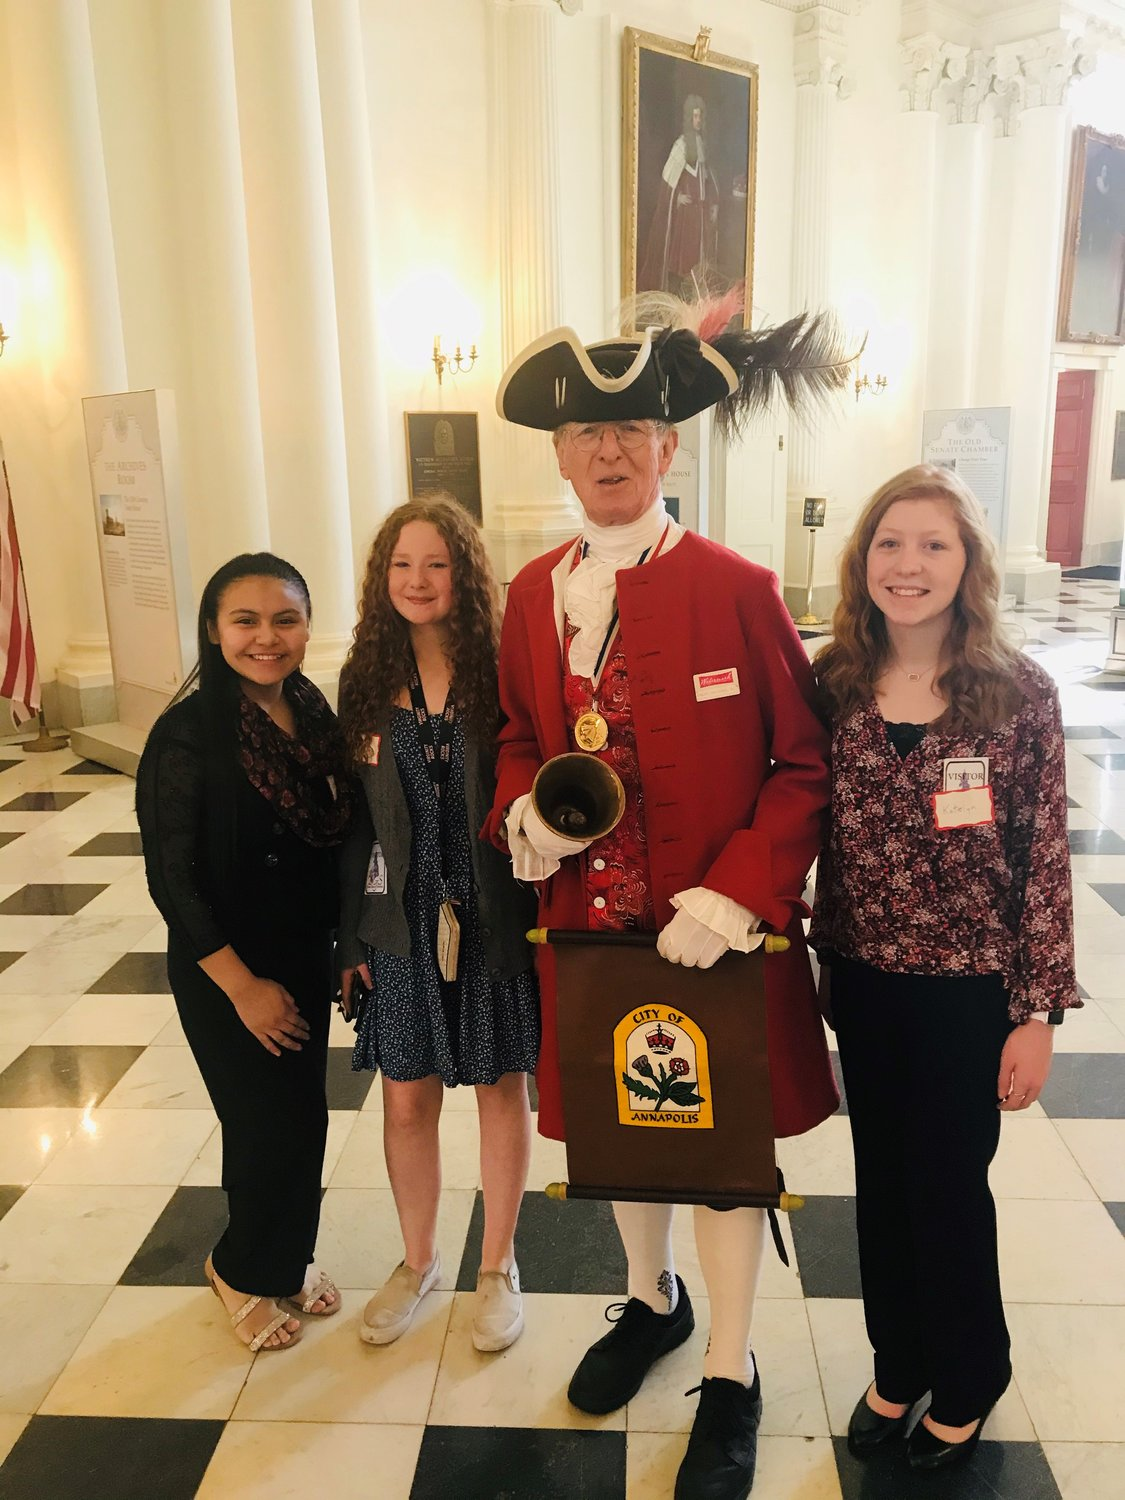 (L-R) Perla Ramirez-Lopez, Bridgette Myers and Katelyn Kilgore toured buildings in the state complex after winning the Senator for a Day essay contest.